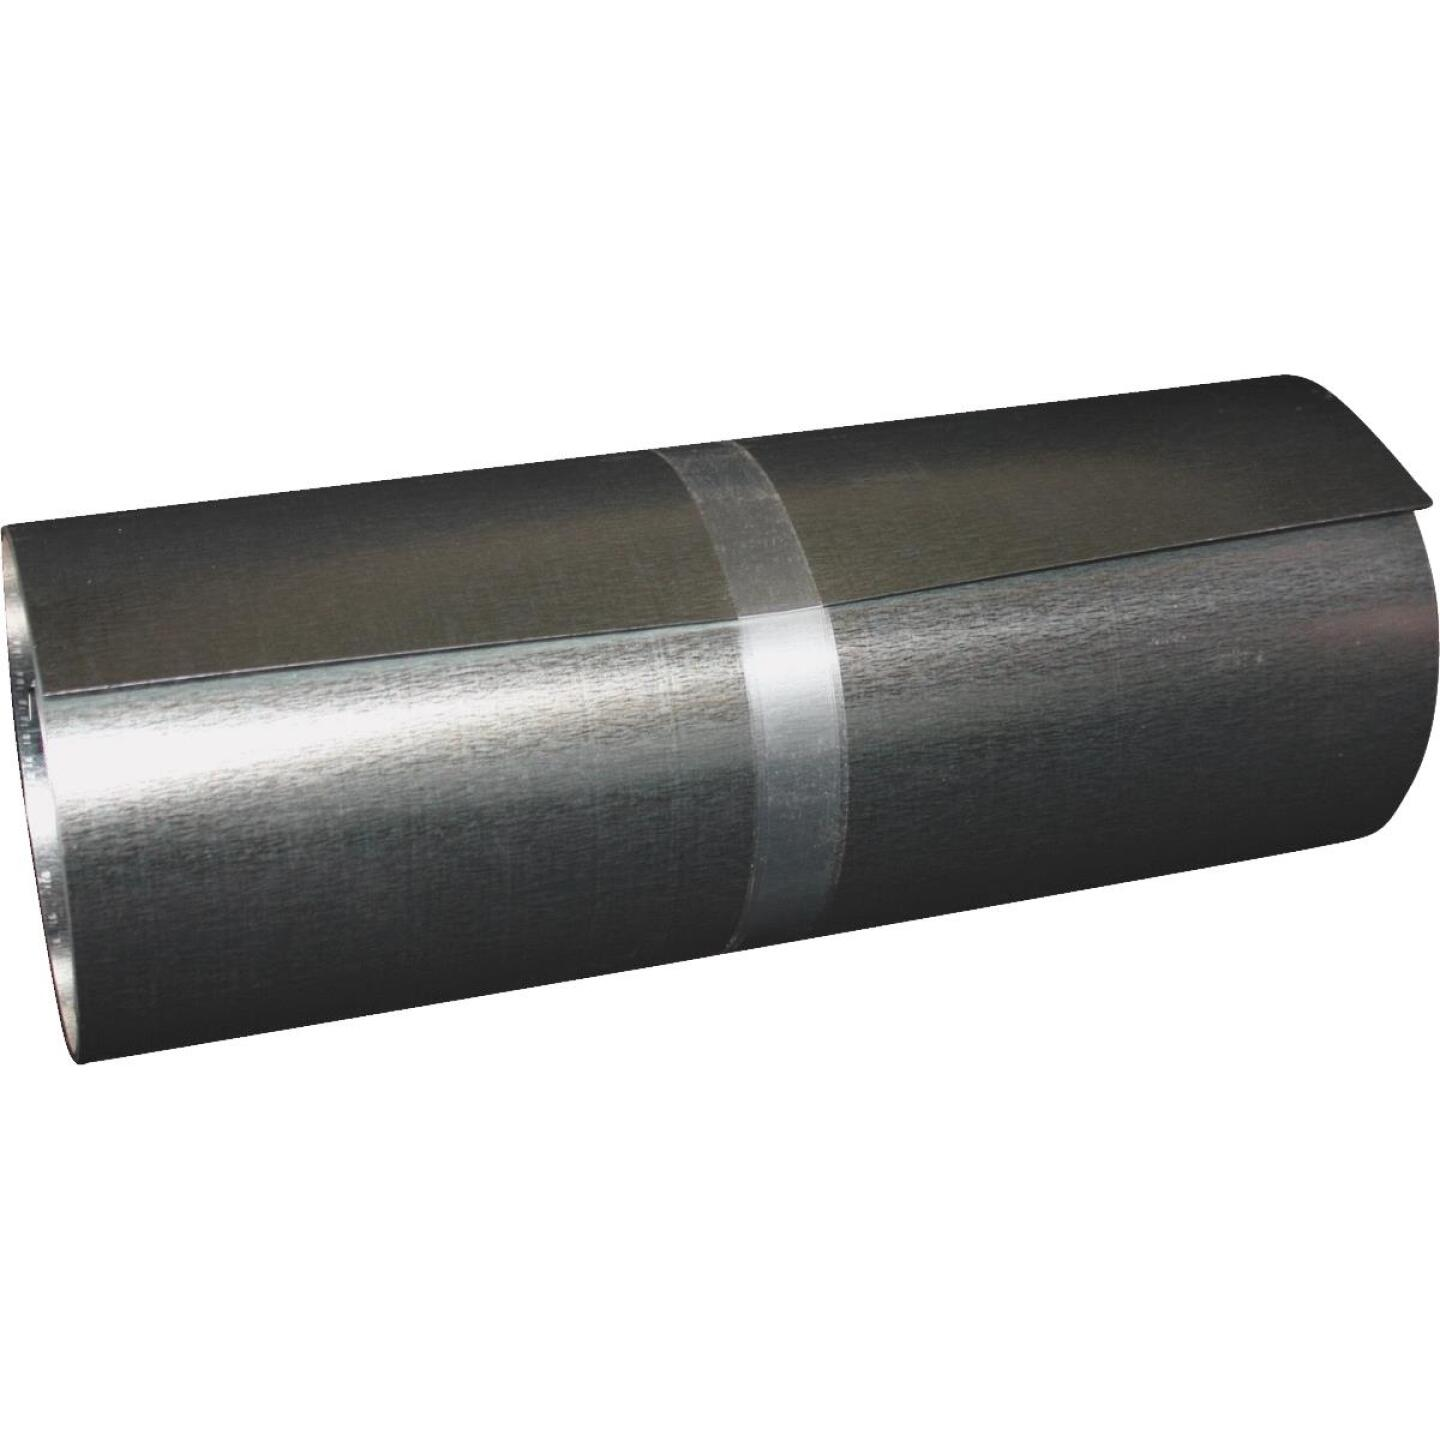 Klauer 4 In. x 50 Ft. x .010 In. Mill Galvanized Roll Valley Flashing Image 1